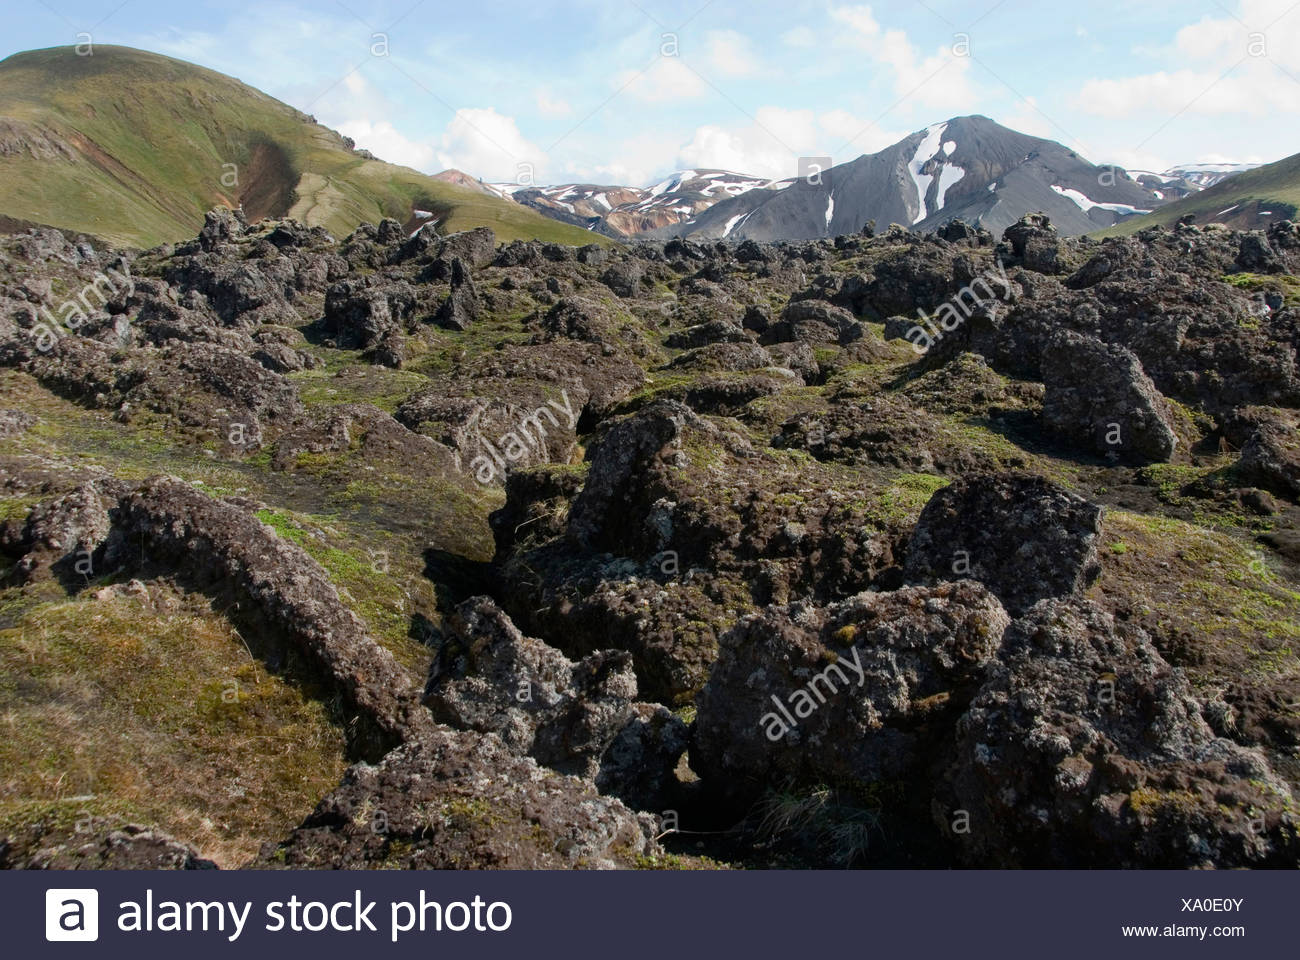 landscape with cooled down of stream of lava, Iceland, Fjallabak National Park, Landmannalaugar - Stock Image